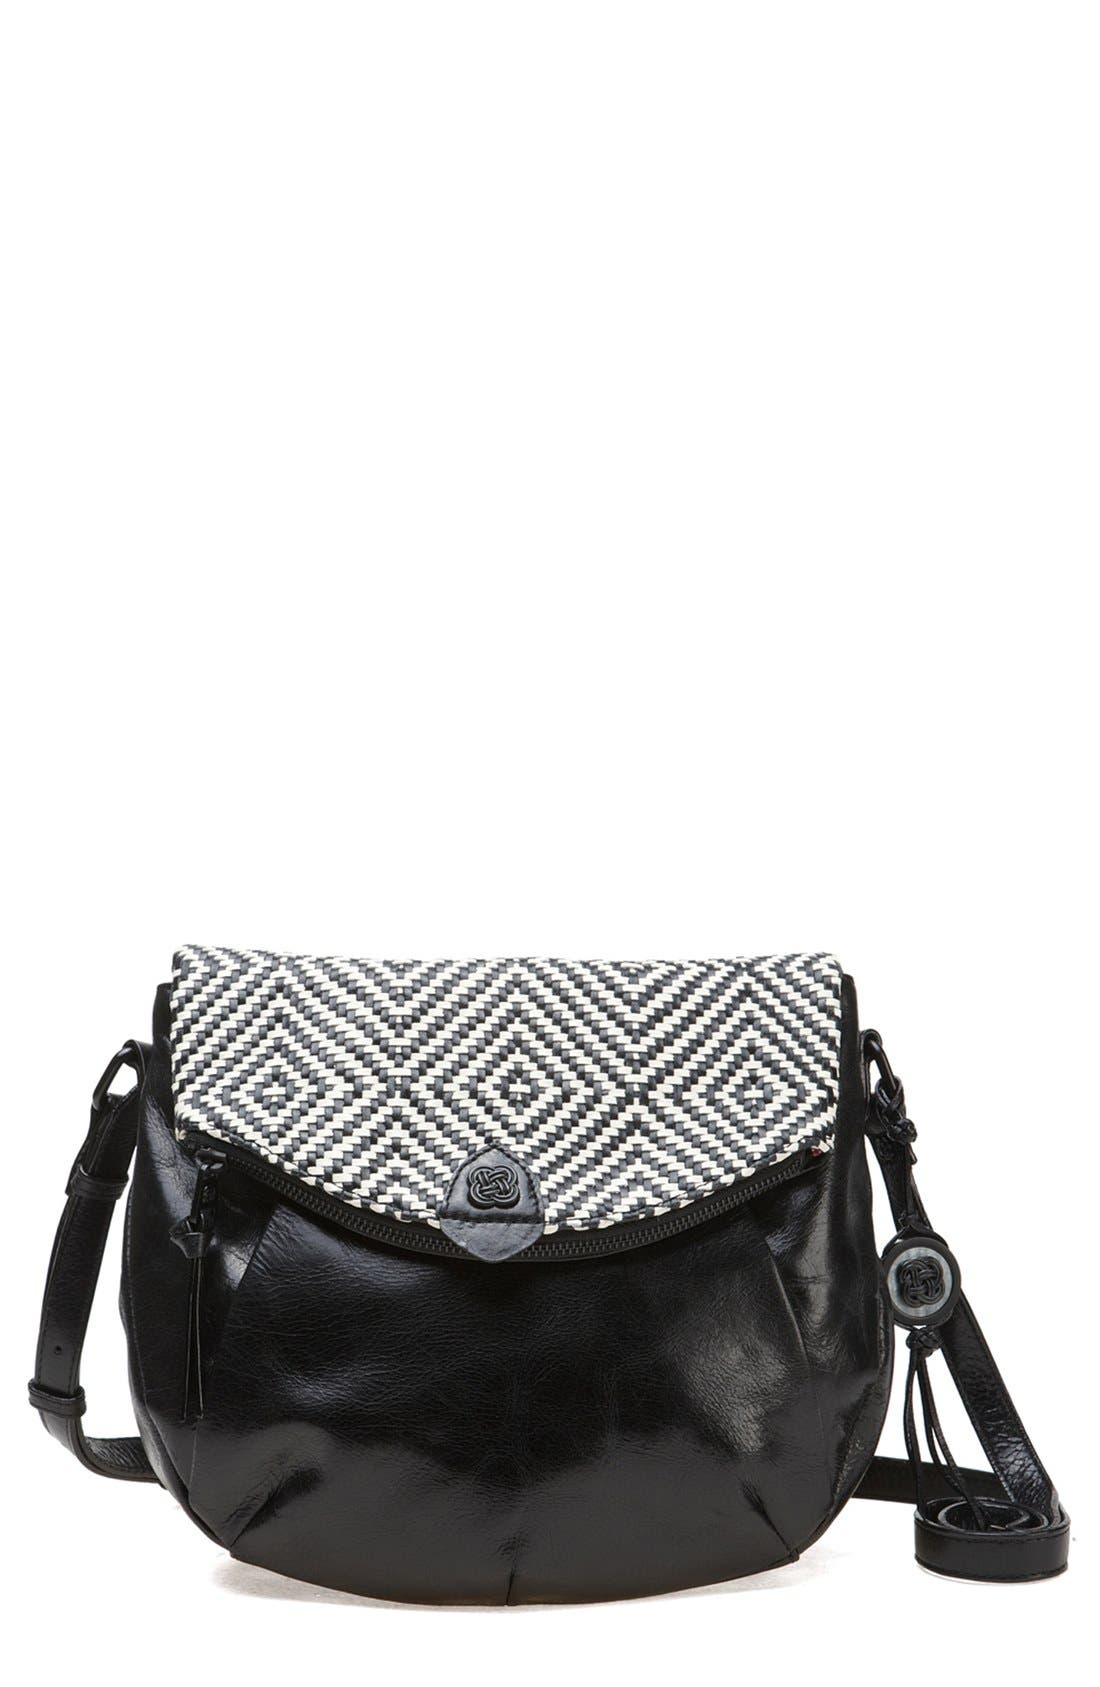 Alternate Image 1 Selected - Elliott Lucca Leather Crossbody Bag